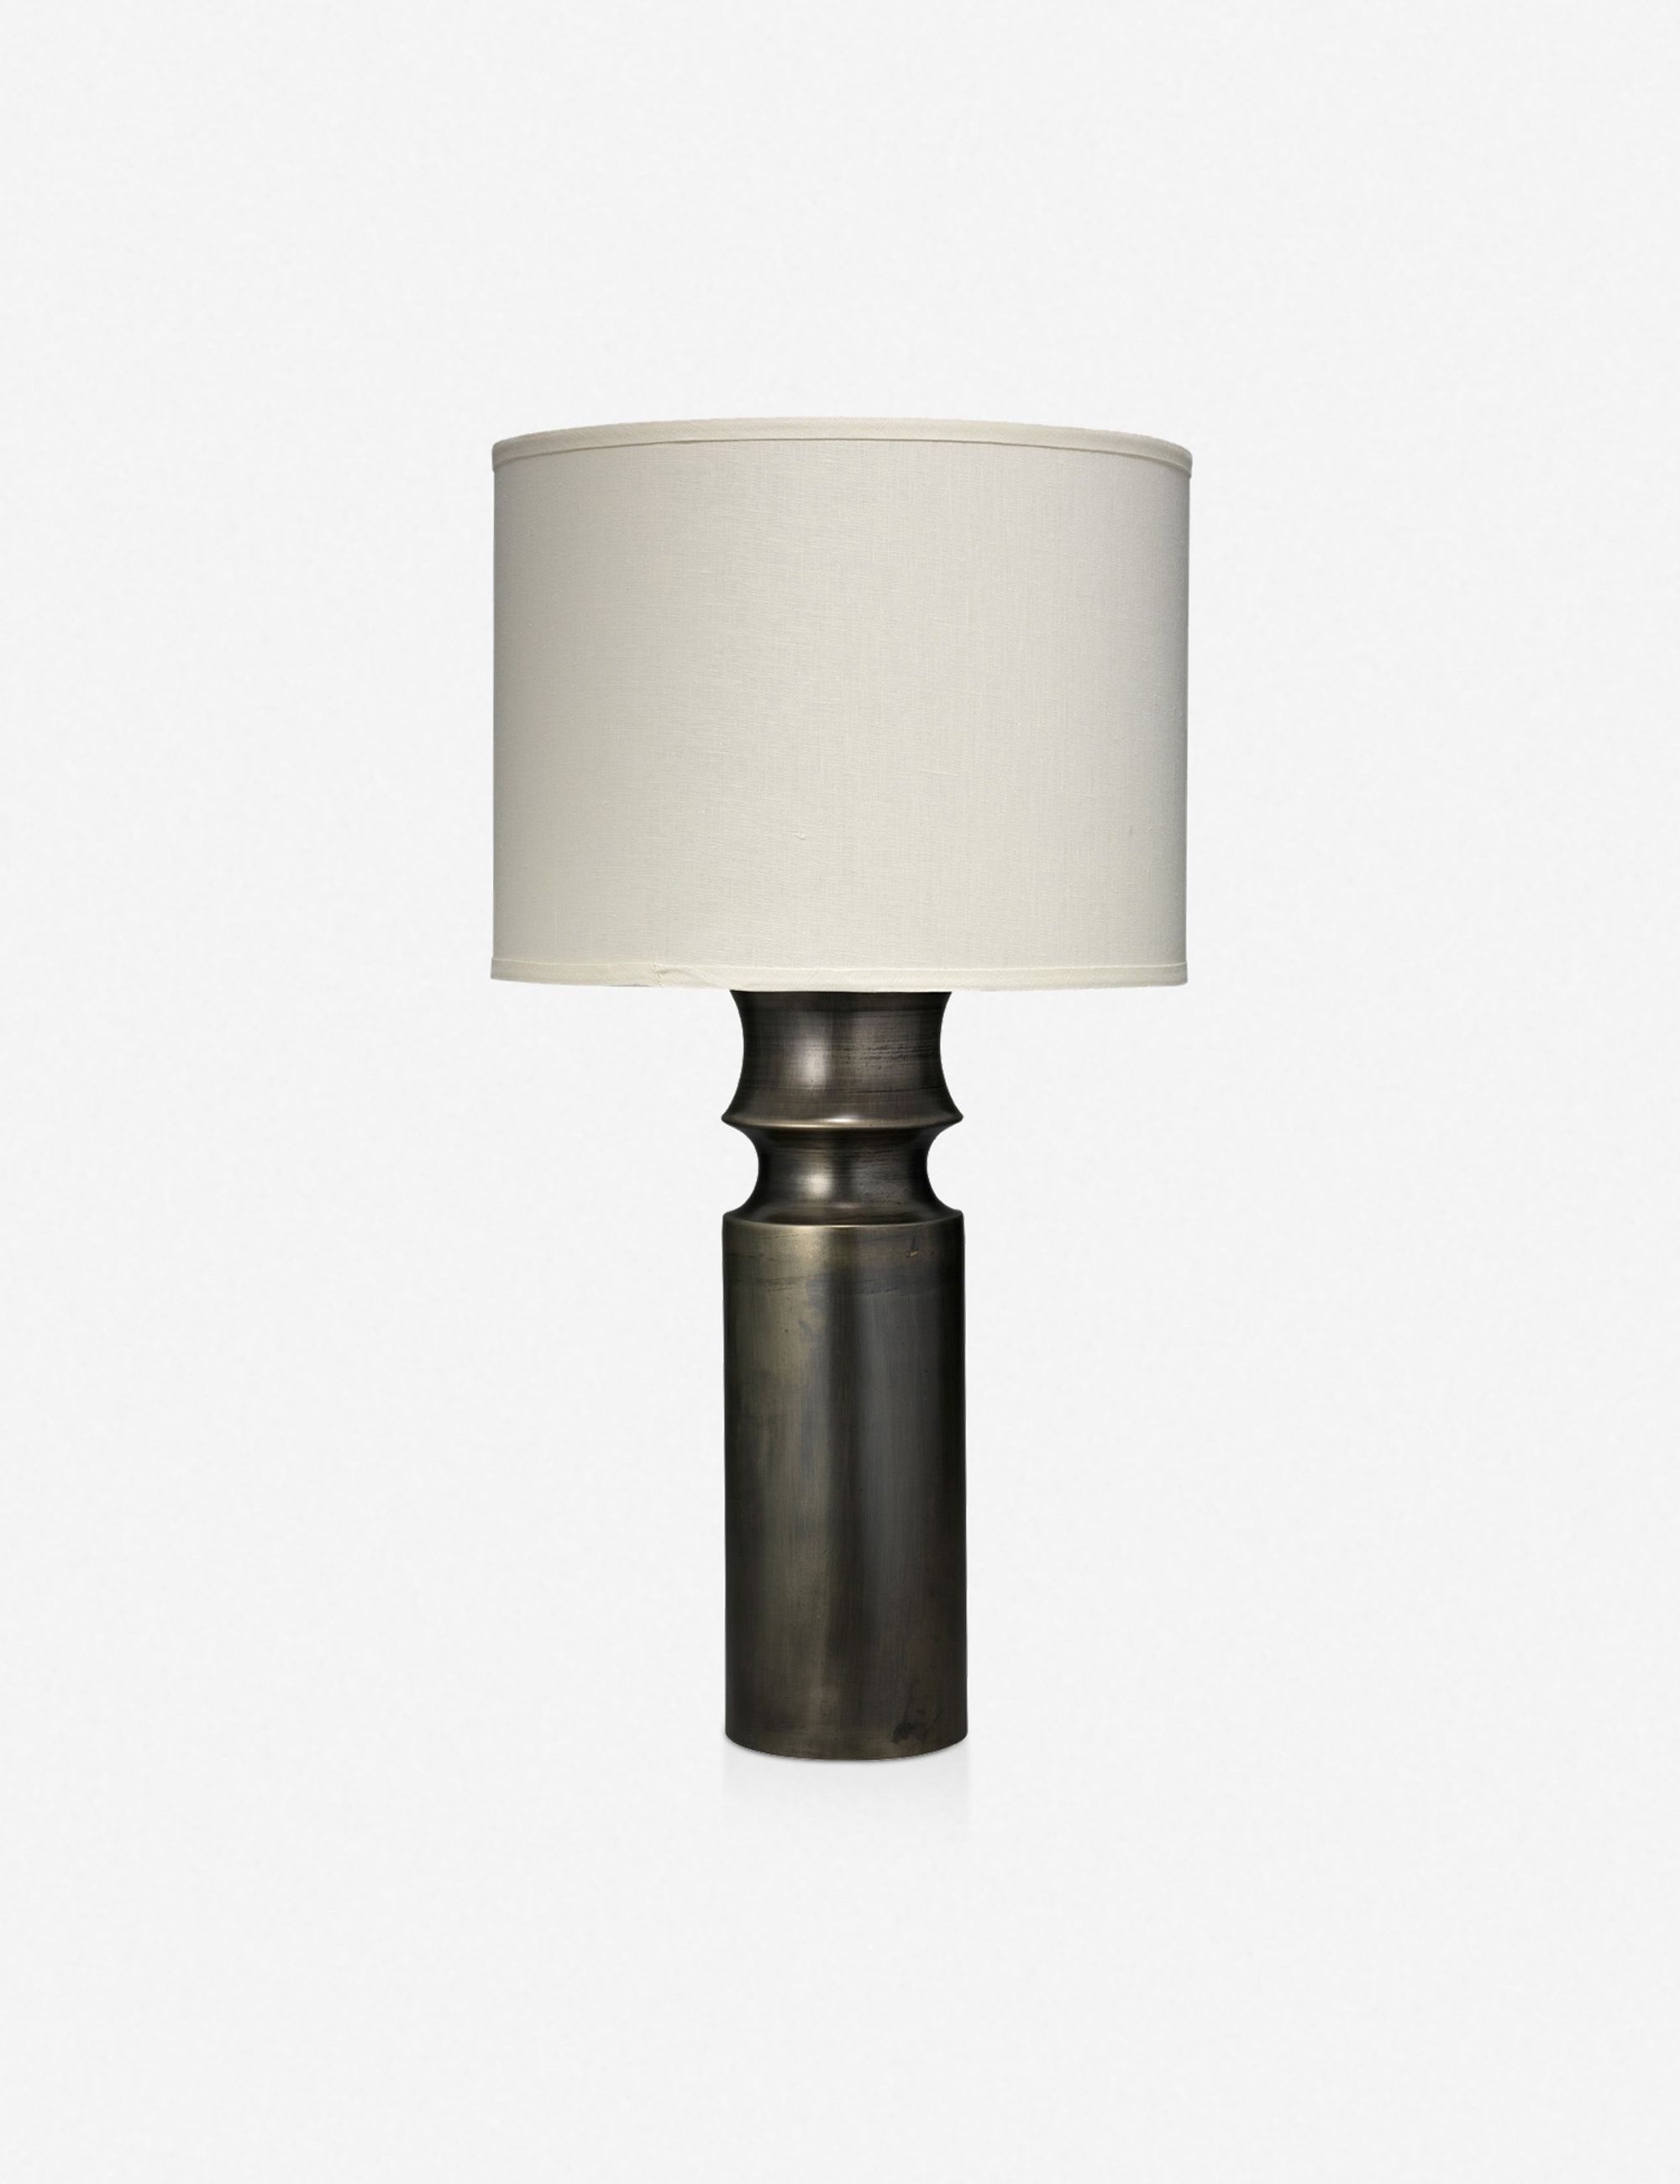 Elegant Lines Industrial Materials This Table Lamp Can Do Both At The Same Time Perfecting Combining Aesthetics And Creating A Stateme Table Lamp Lamp Table